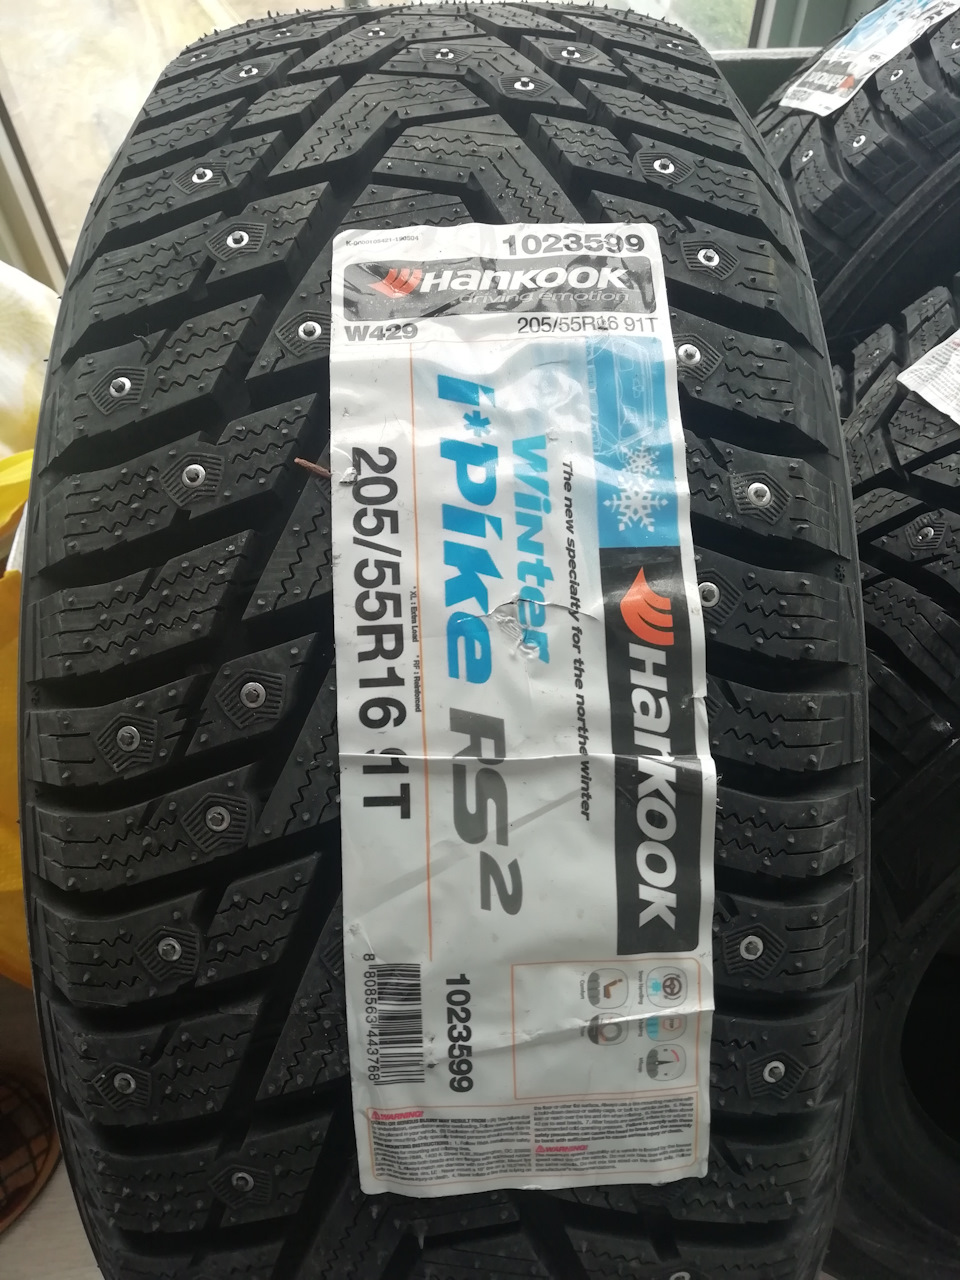 Hankook Ipike Rsv >> Hankook Ipike Rs2 Hankook Winter I Pike Rs W419 Test And